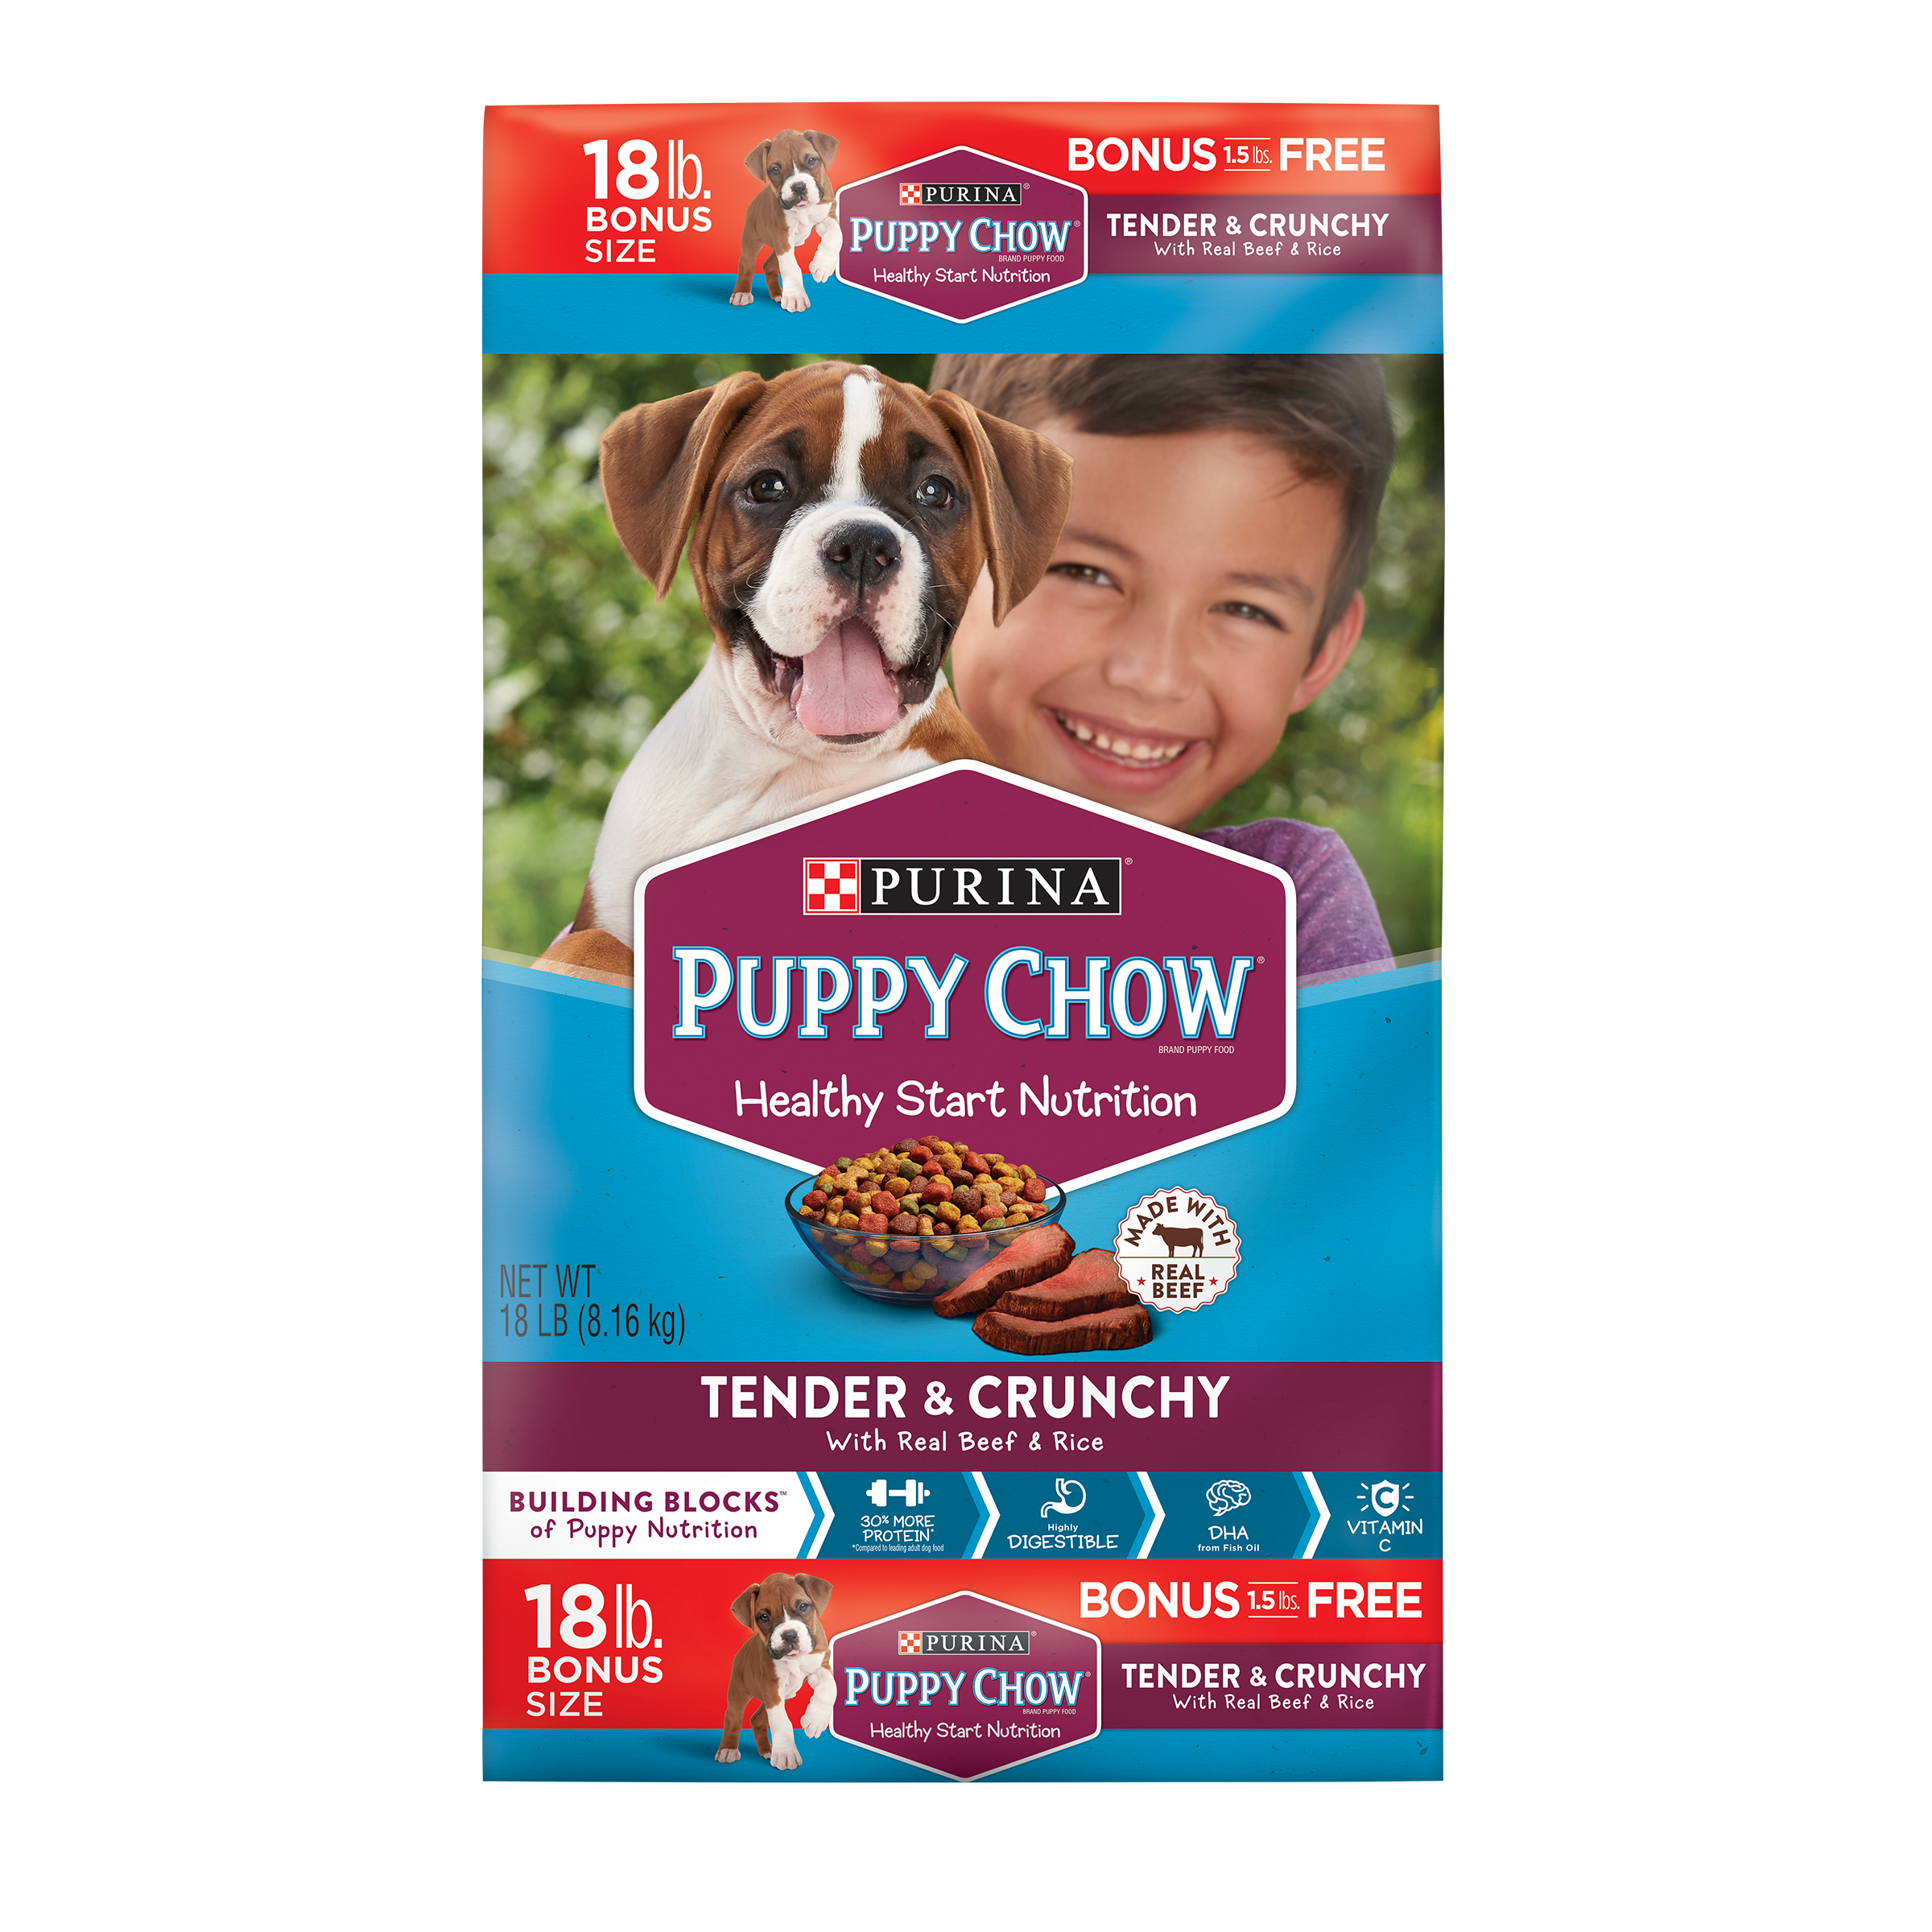 Purina Puppy Chow High Protein Dry Puppy Food; Tender & Crunchy with Real Beef - 18 lb. Bag